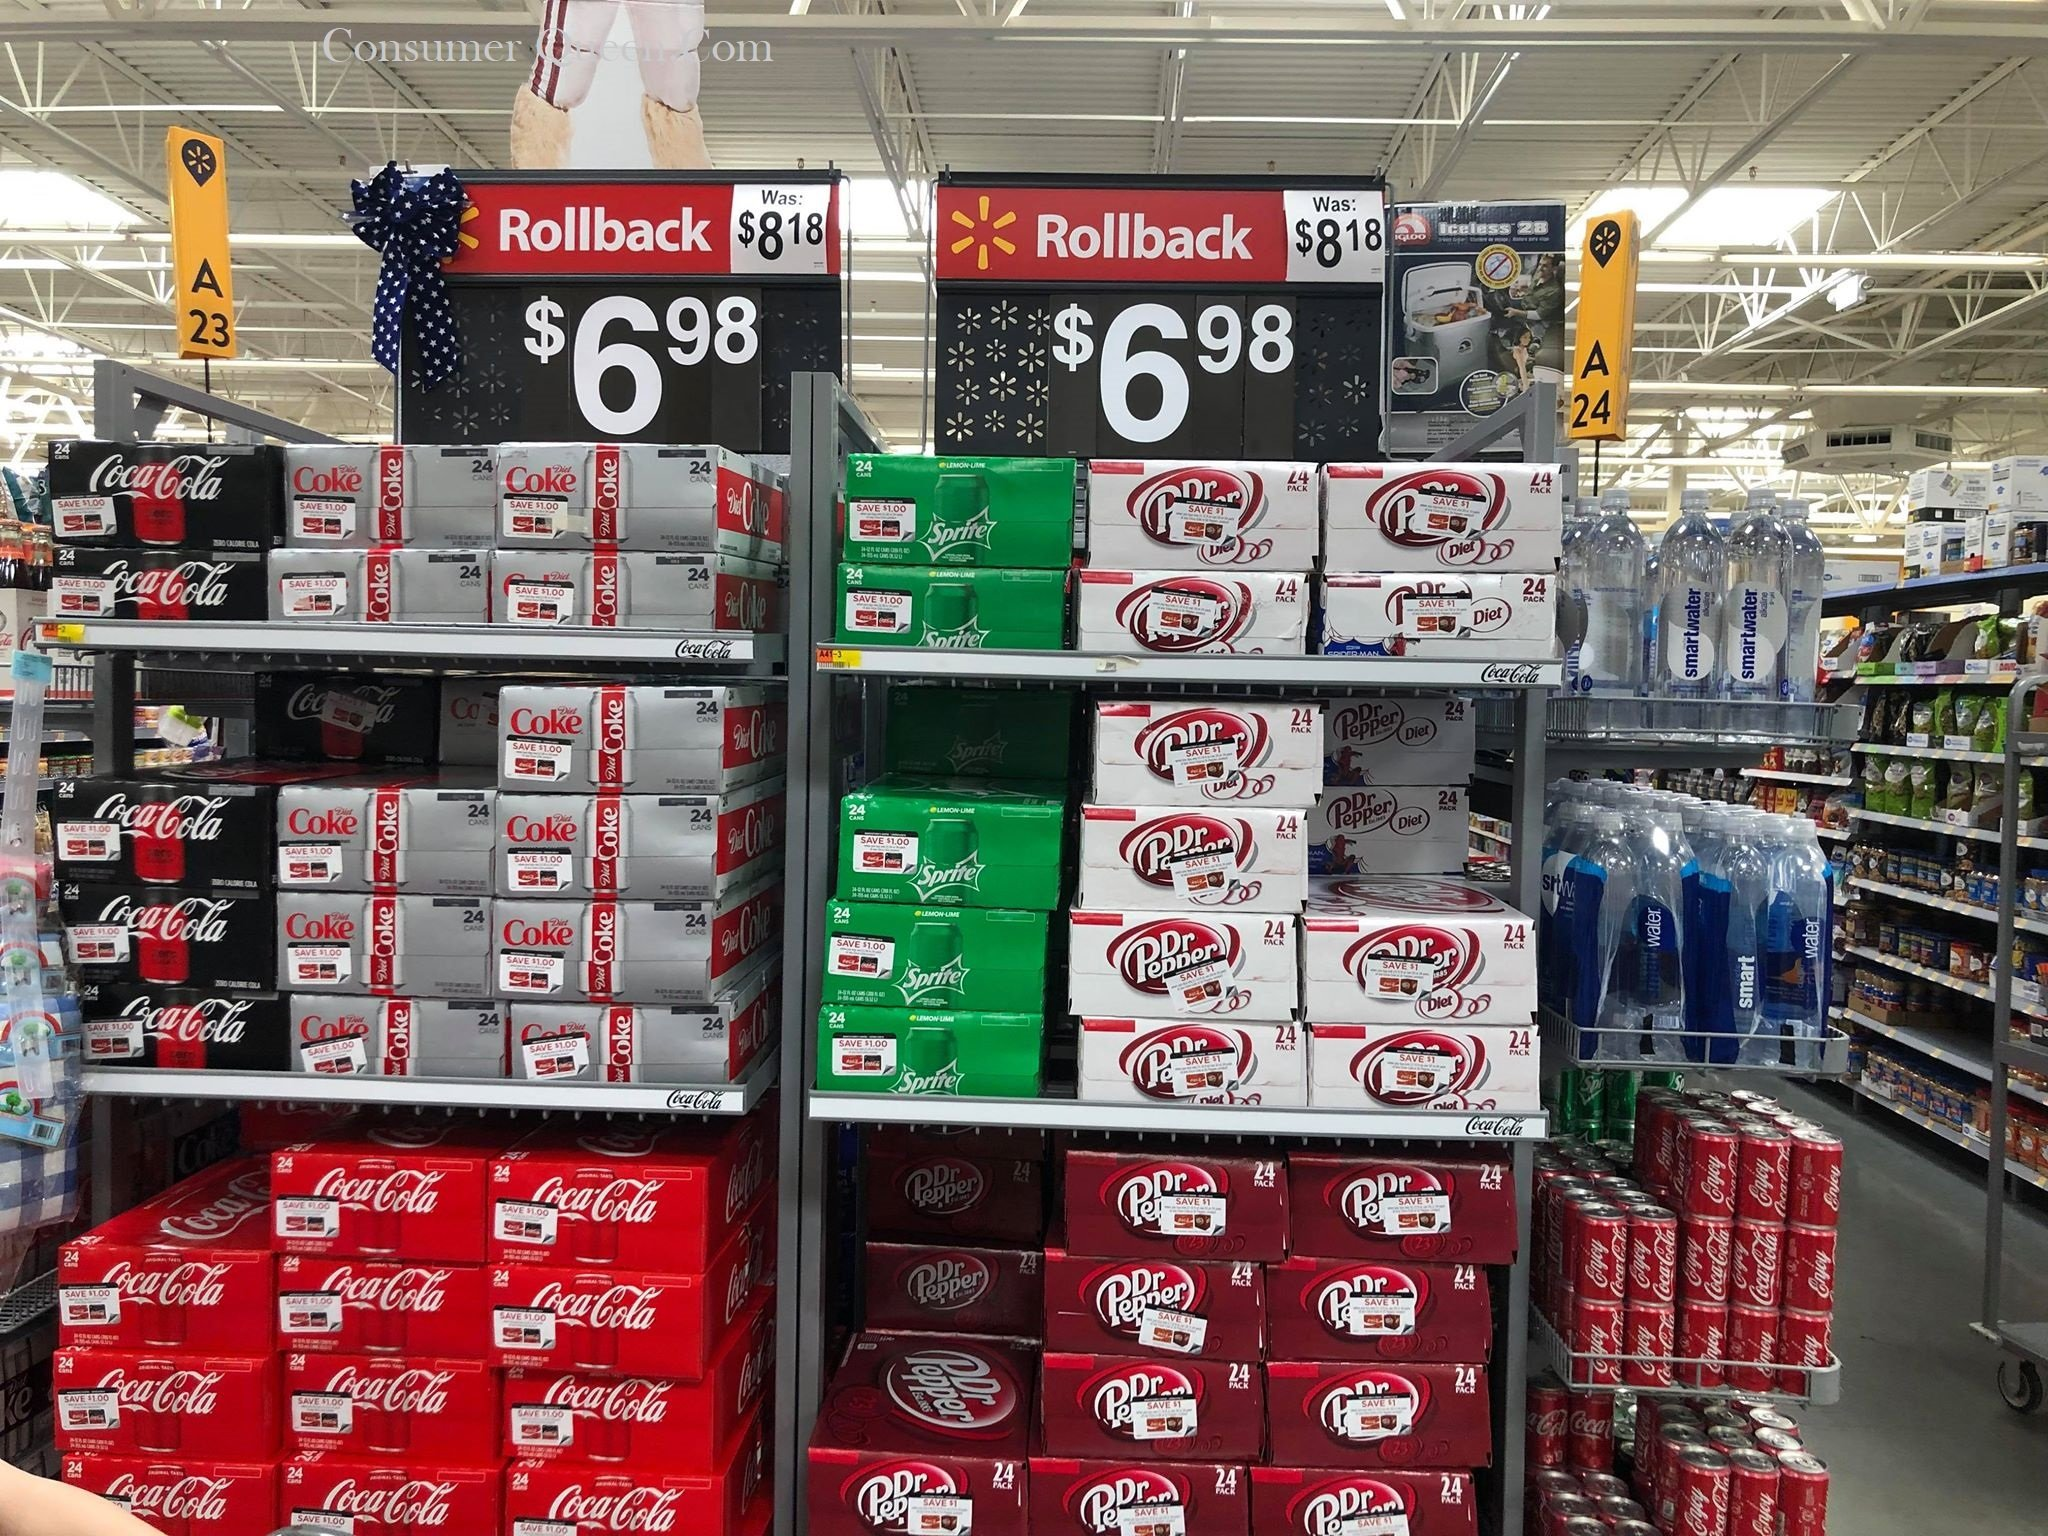 Coke and Dr. Pepper 24-Pack Cans $5.98 at Walmart!